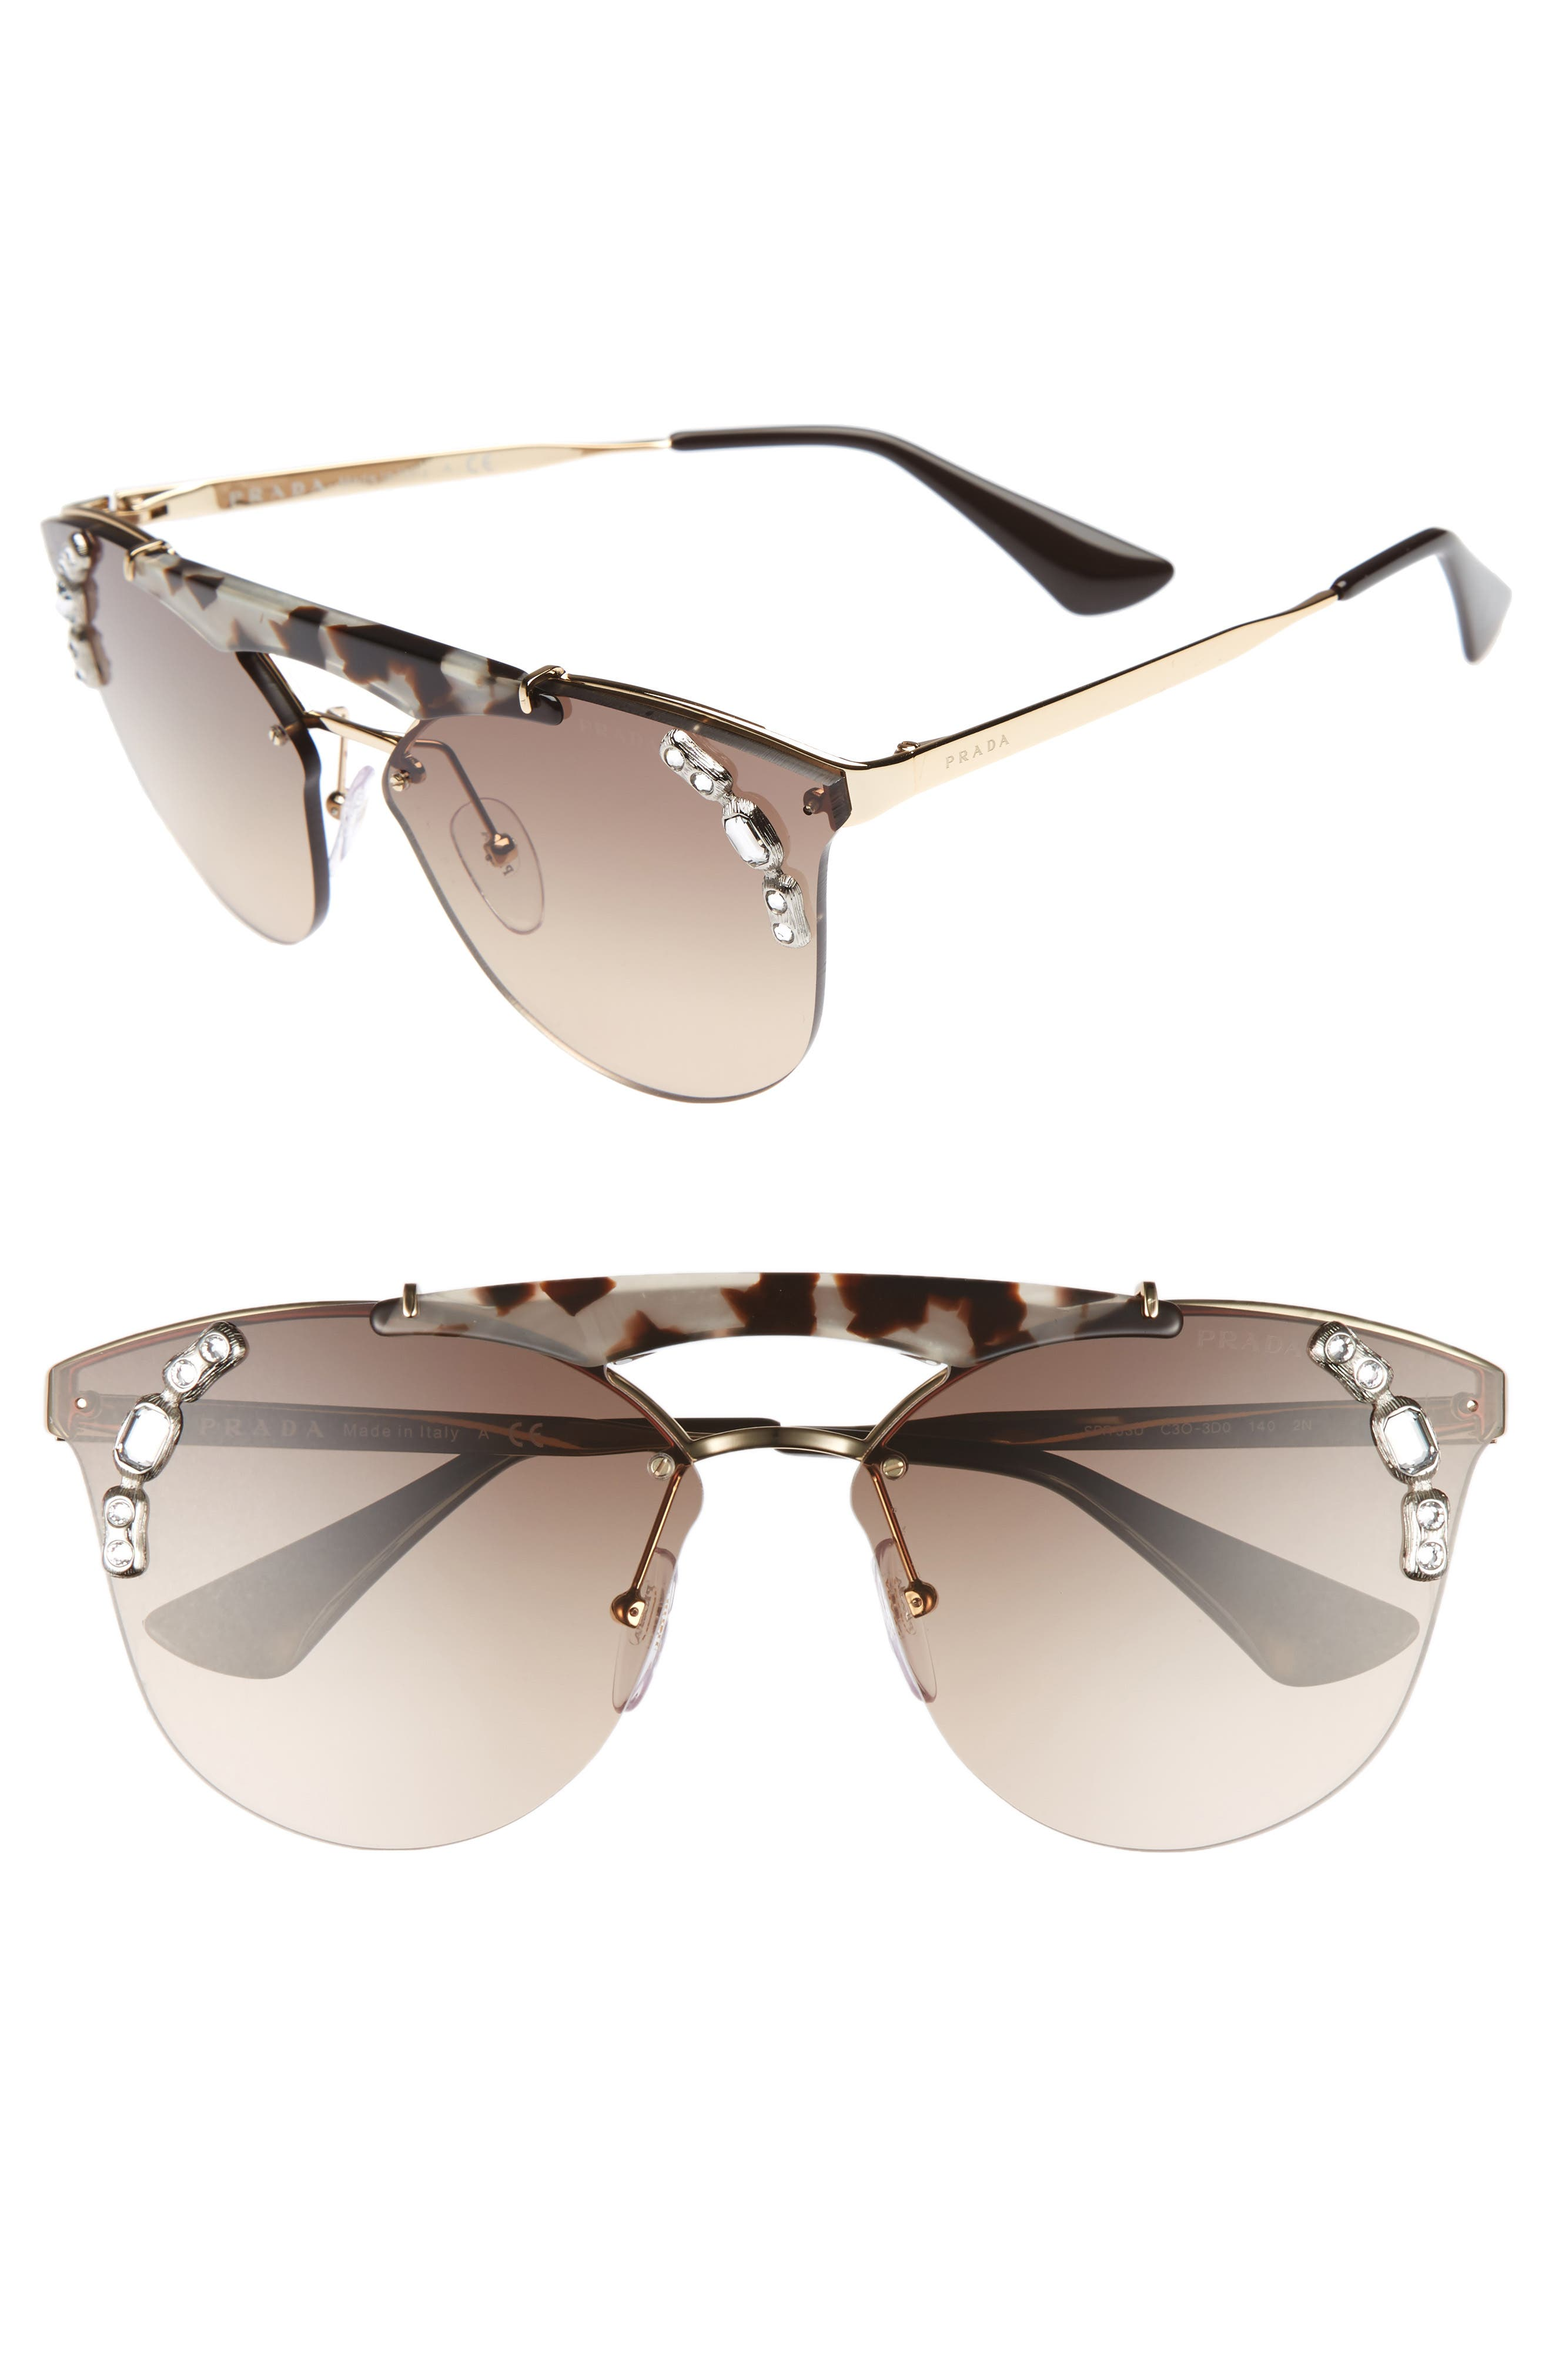 53mm Embellished Rimless Sunglasses,                         Main,                         color, Gold/ Brown